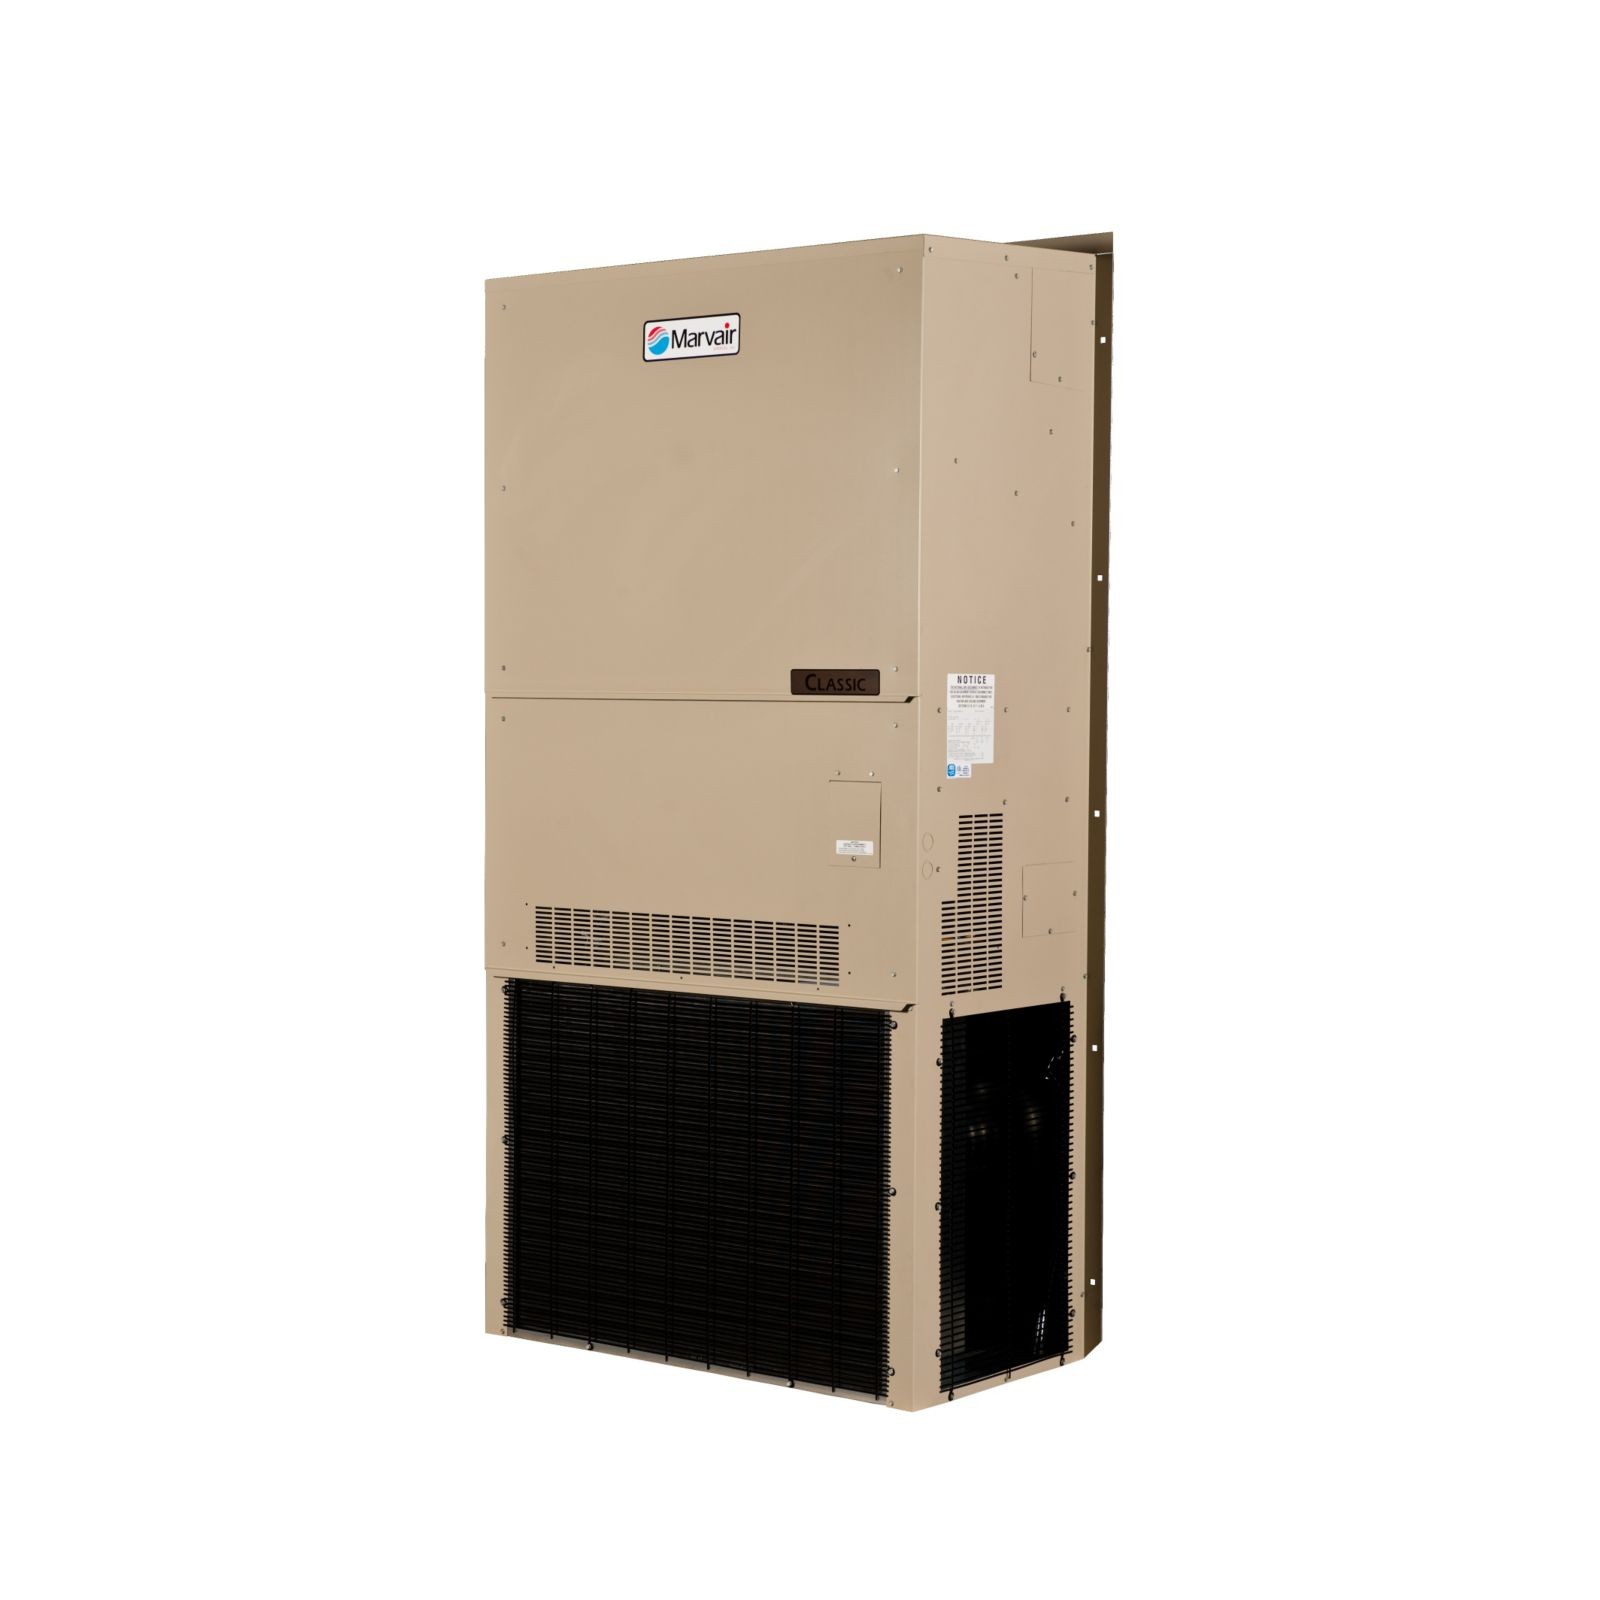 Marvair AVPA24ACA100M5-A2-100 - Wall Mount AC, ModPac, 2 Ton, 208-230/1, 10KW, Manual Damper, R410A